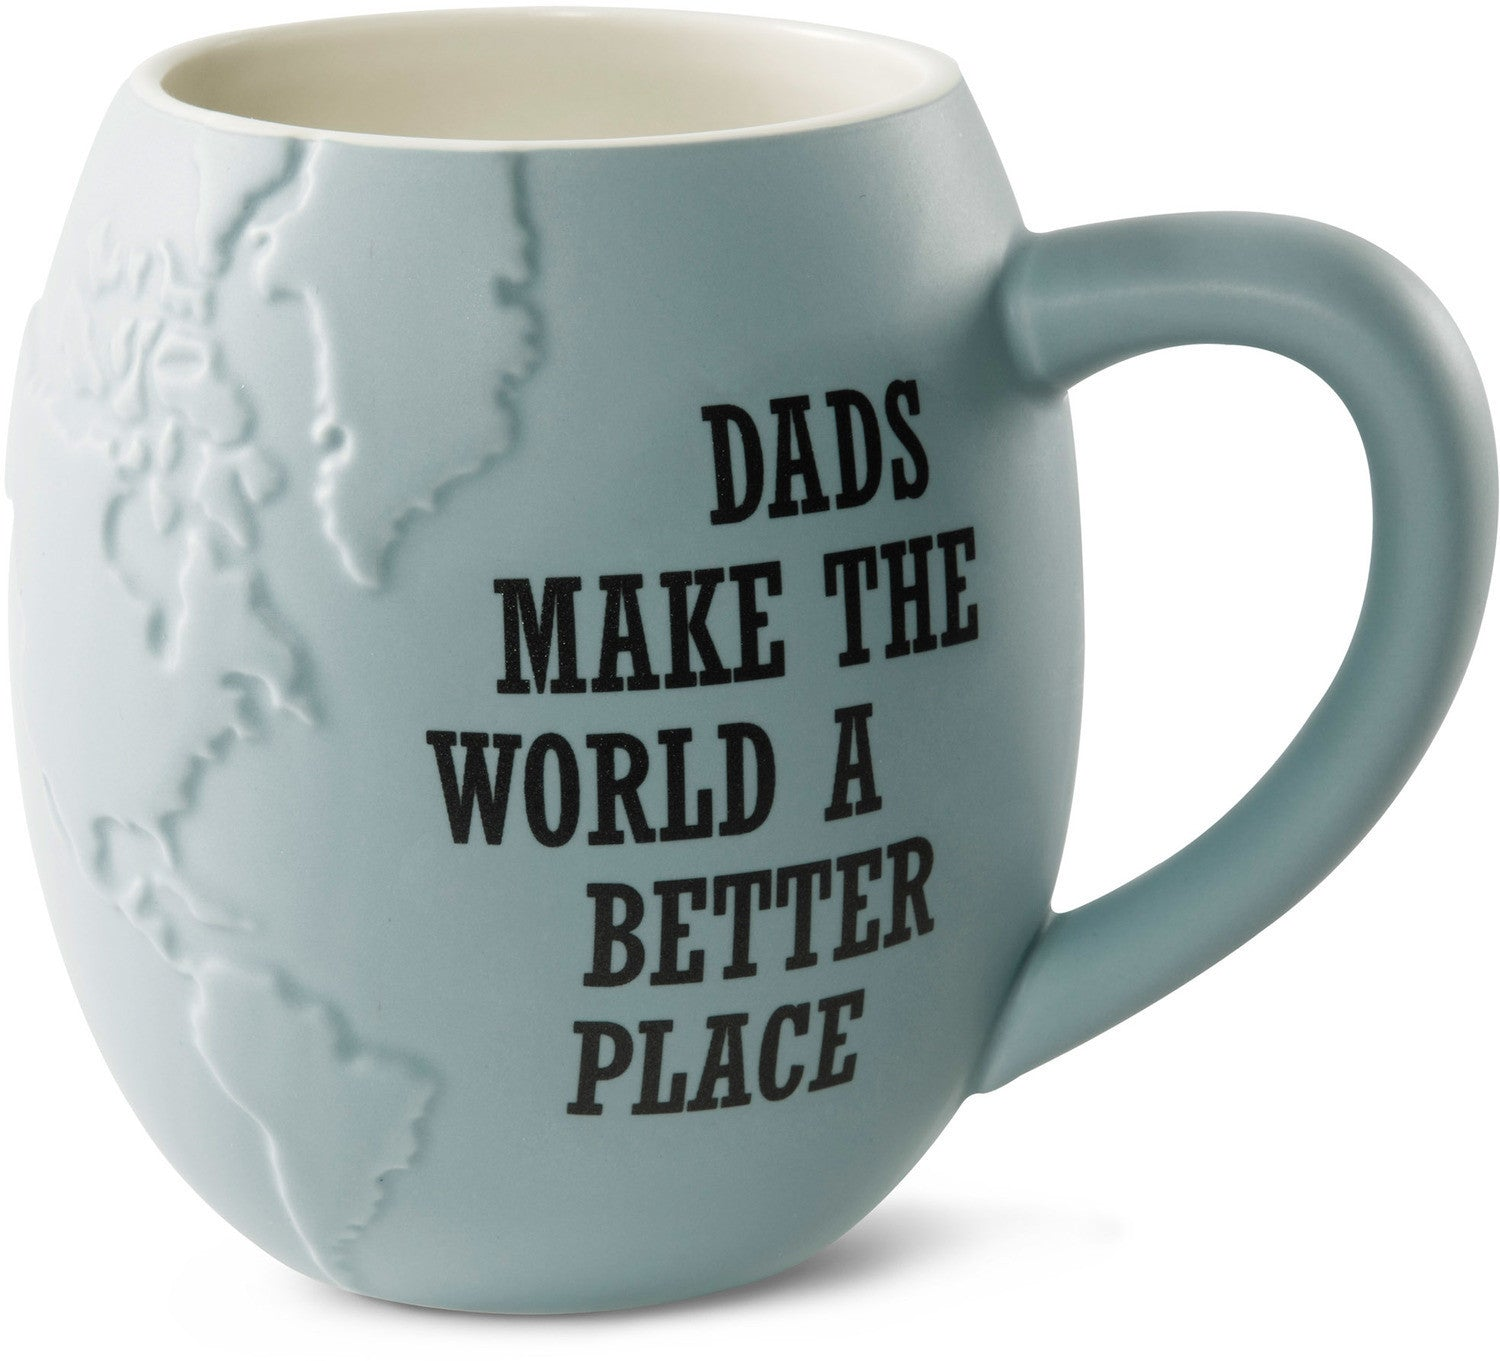 Dads Make the World a Better Place Mug by Pavilion Gifts